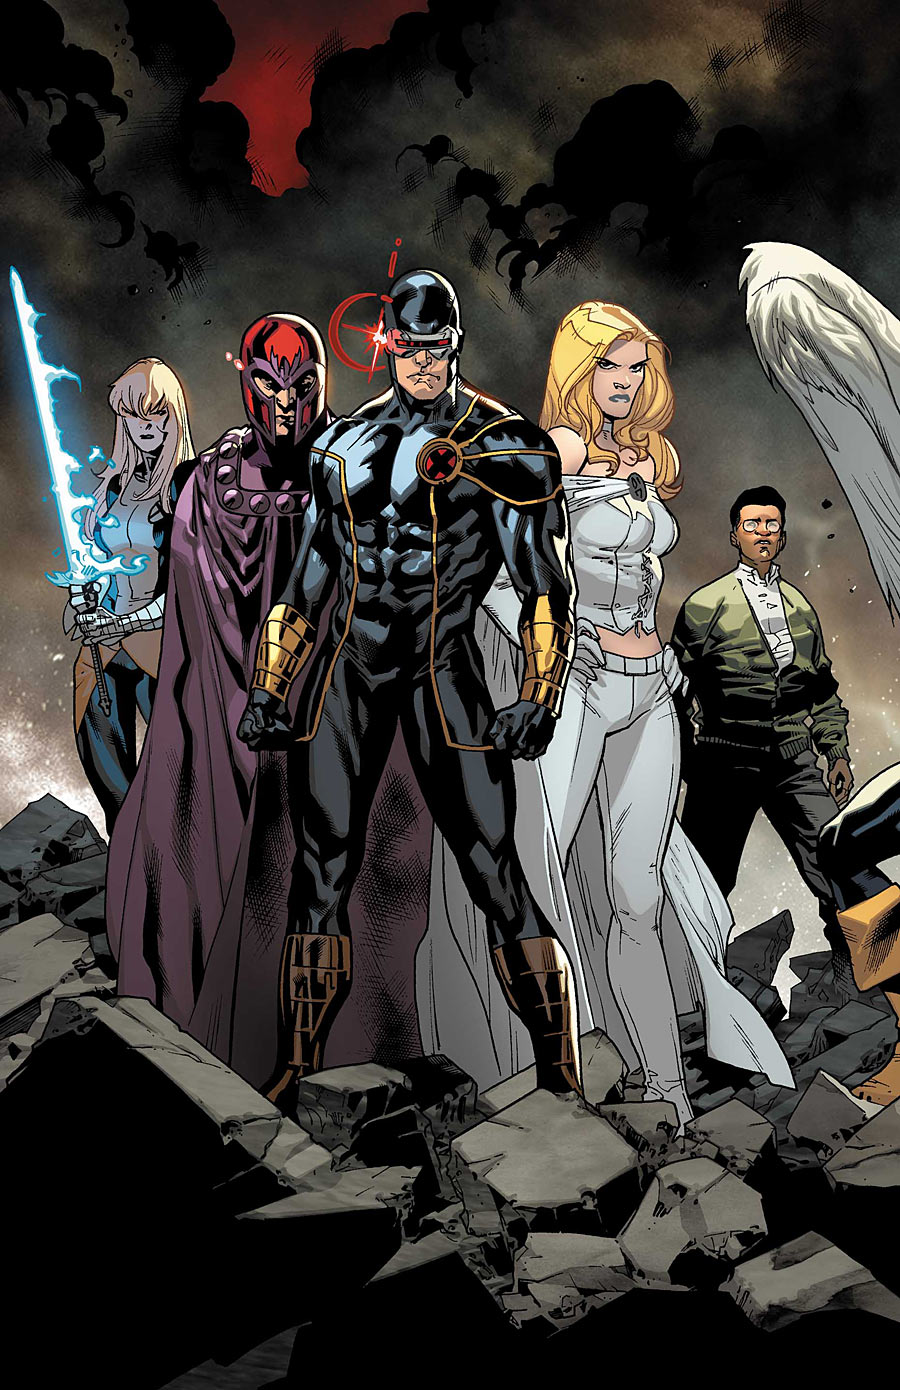 X Men Cyclops And Emma Frost Uncanny X-Men: All-New...